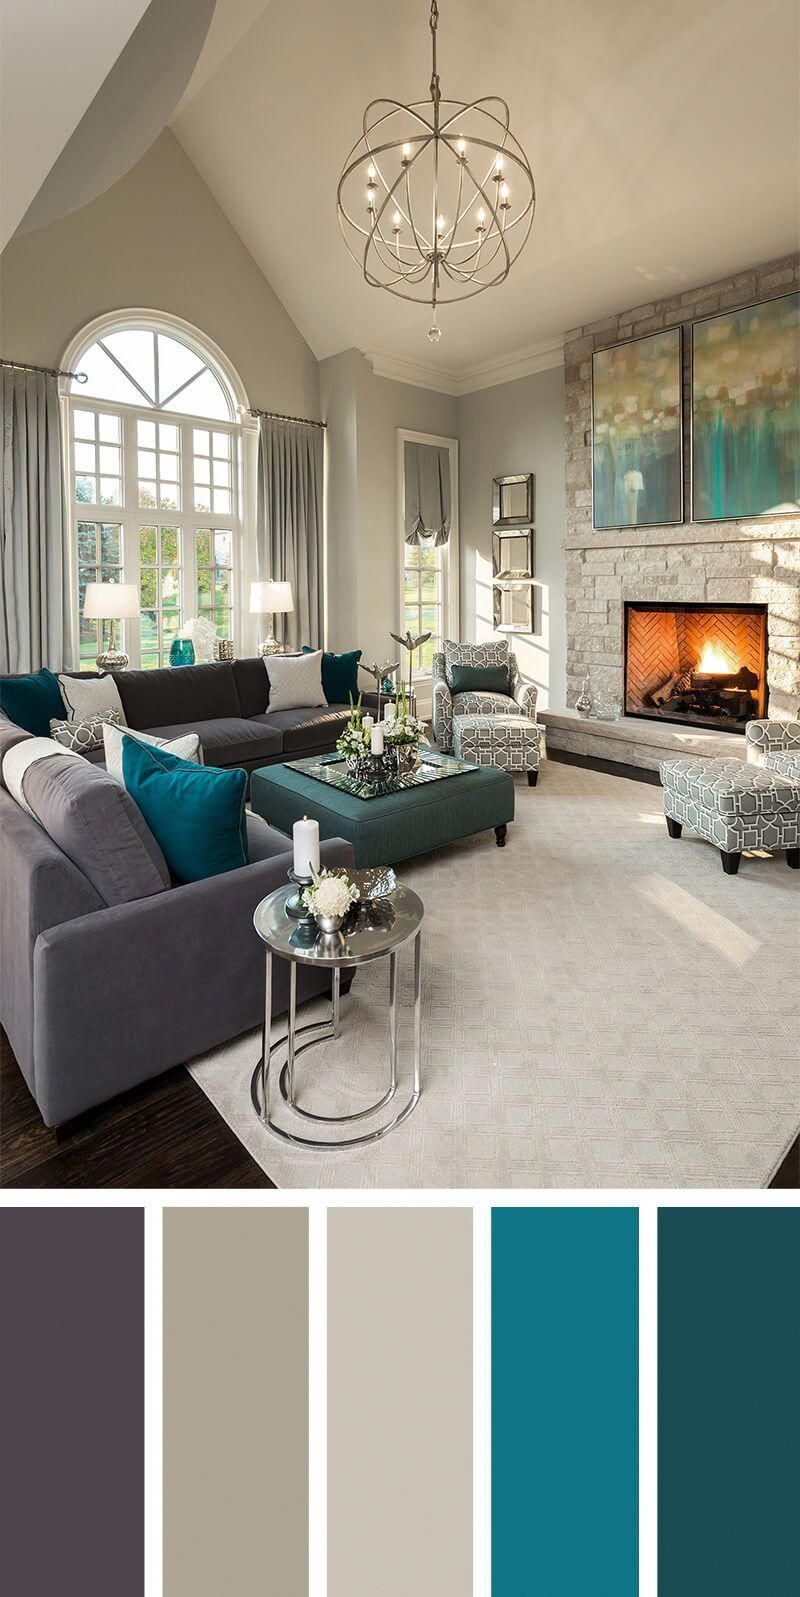 Pin On Transitional Living Room Design Ideas Transitional living room paint